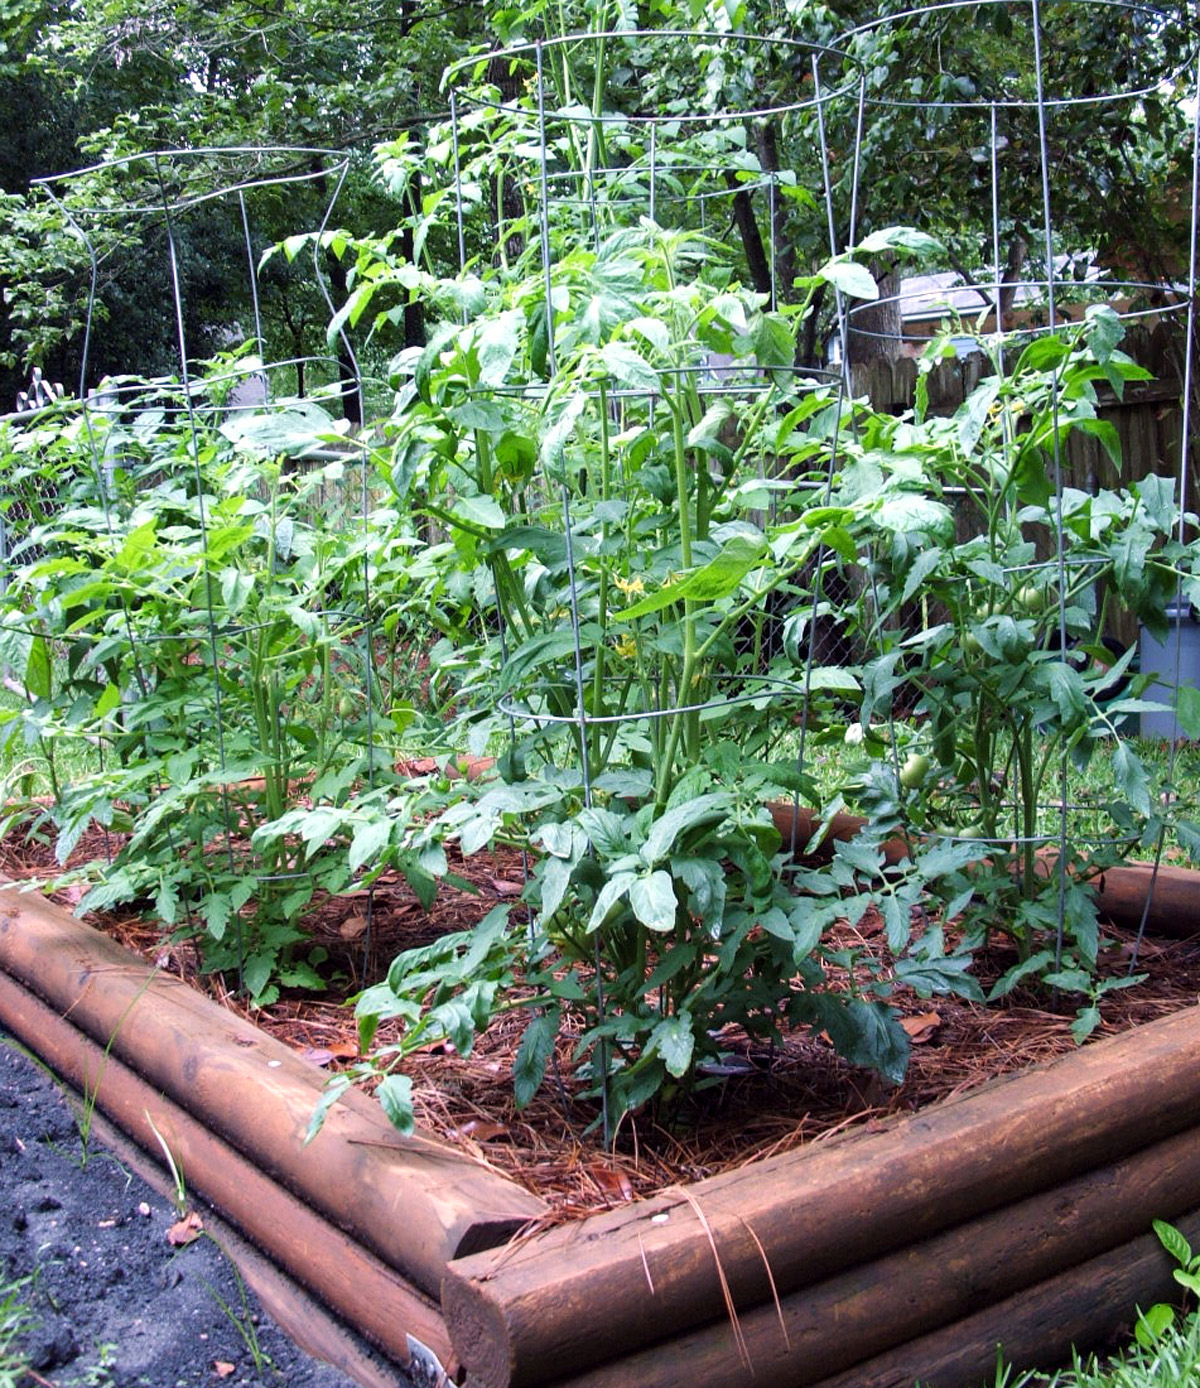 There is still time for Georgia gardeners to plant a late season tomato crop.